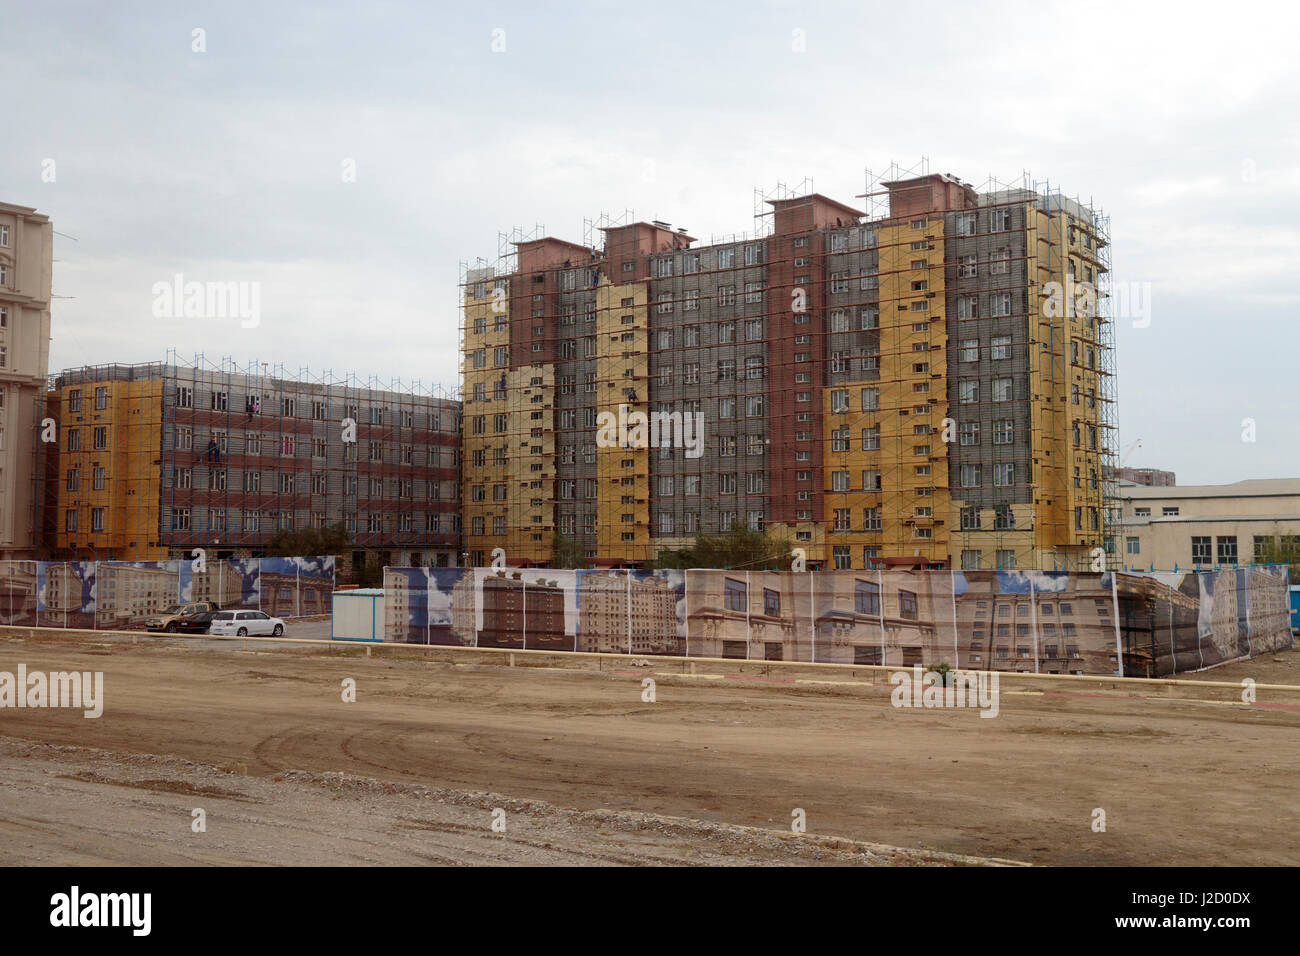 Azerbaijan, Baku. Apartment complexes under construction outside of Baku. - Stock Image